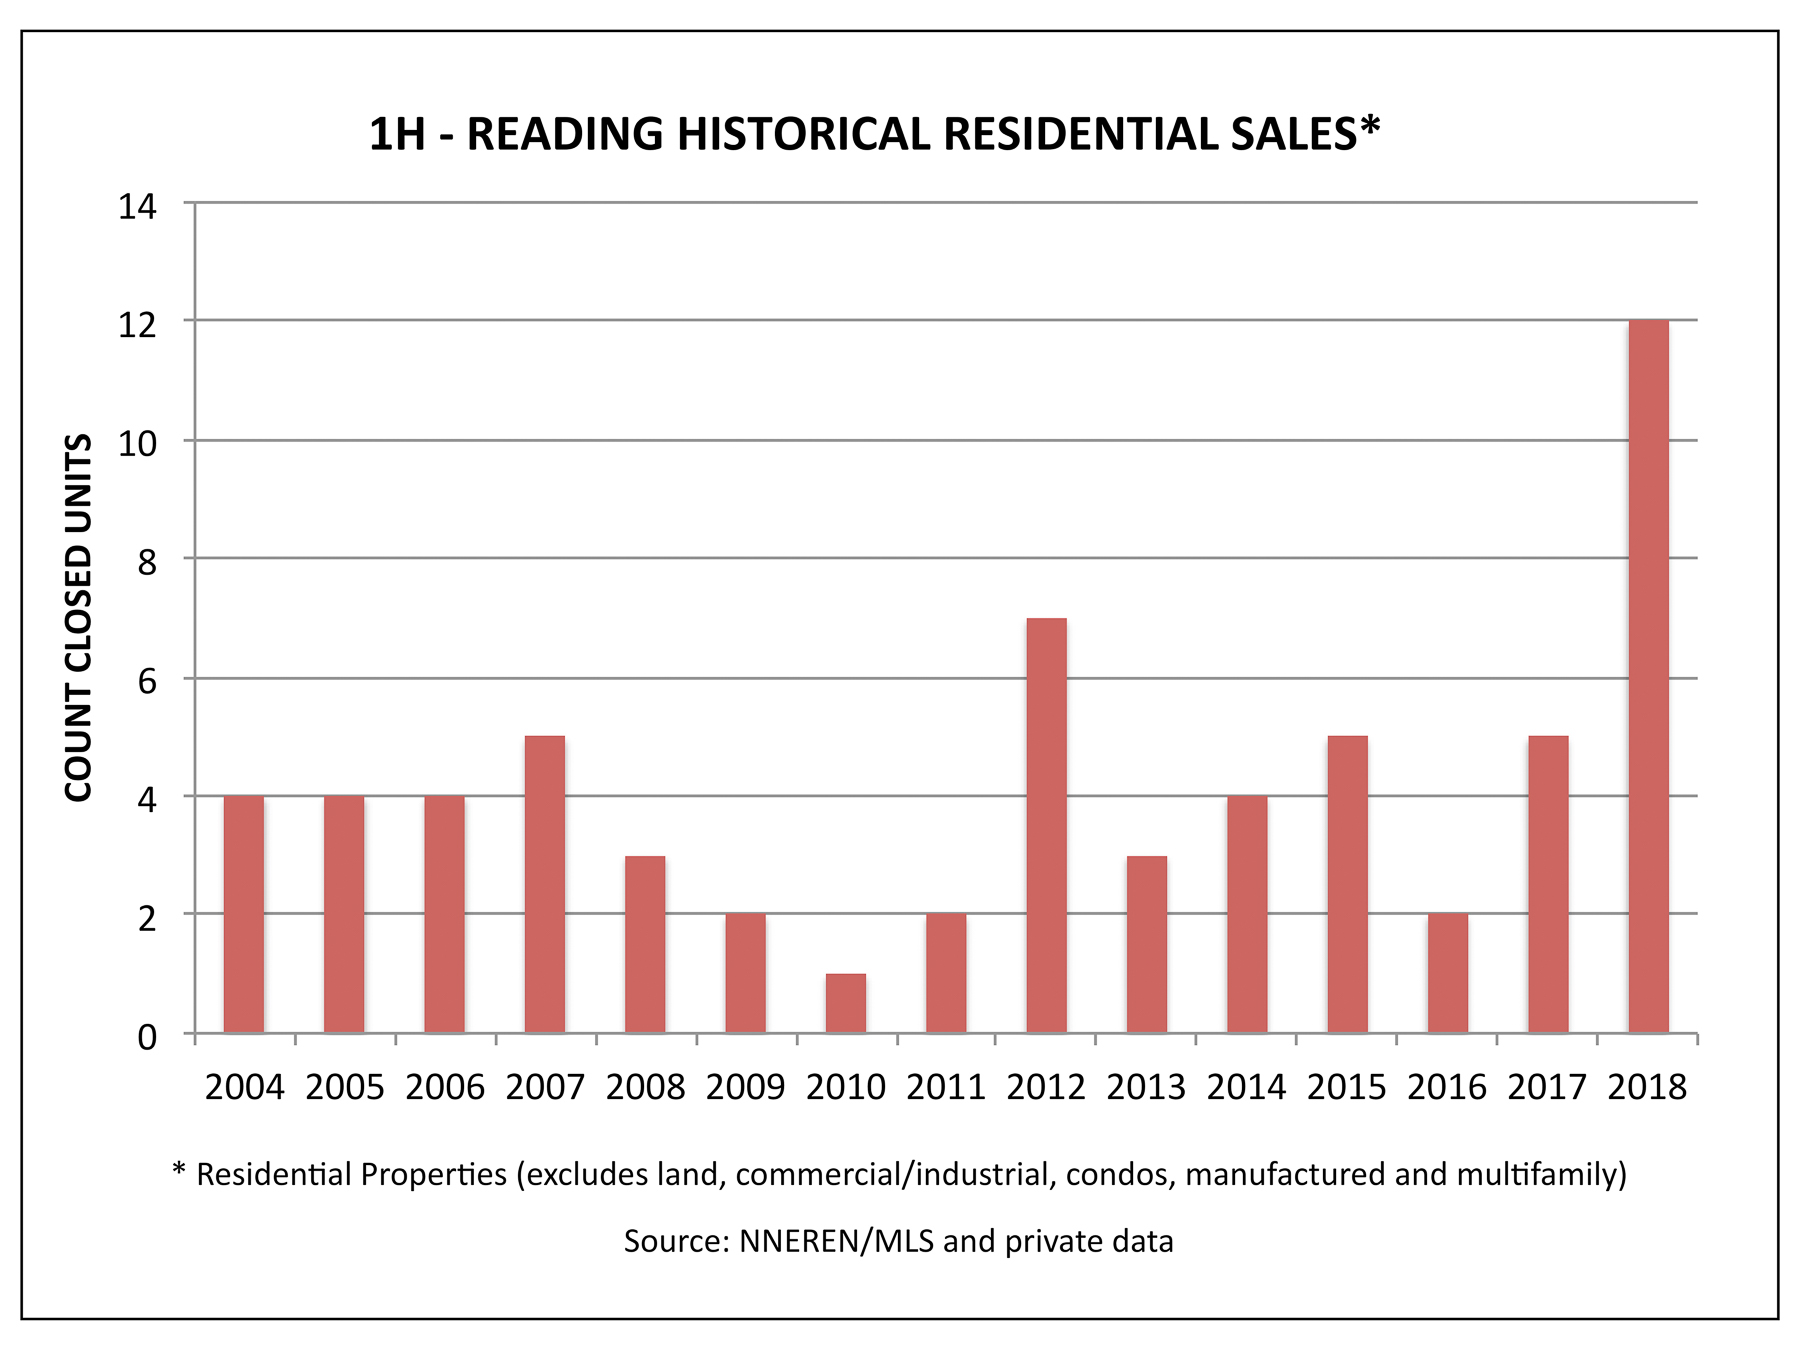 Reading VT Real Estate - Historical Sales in the First Half